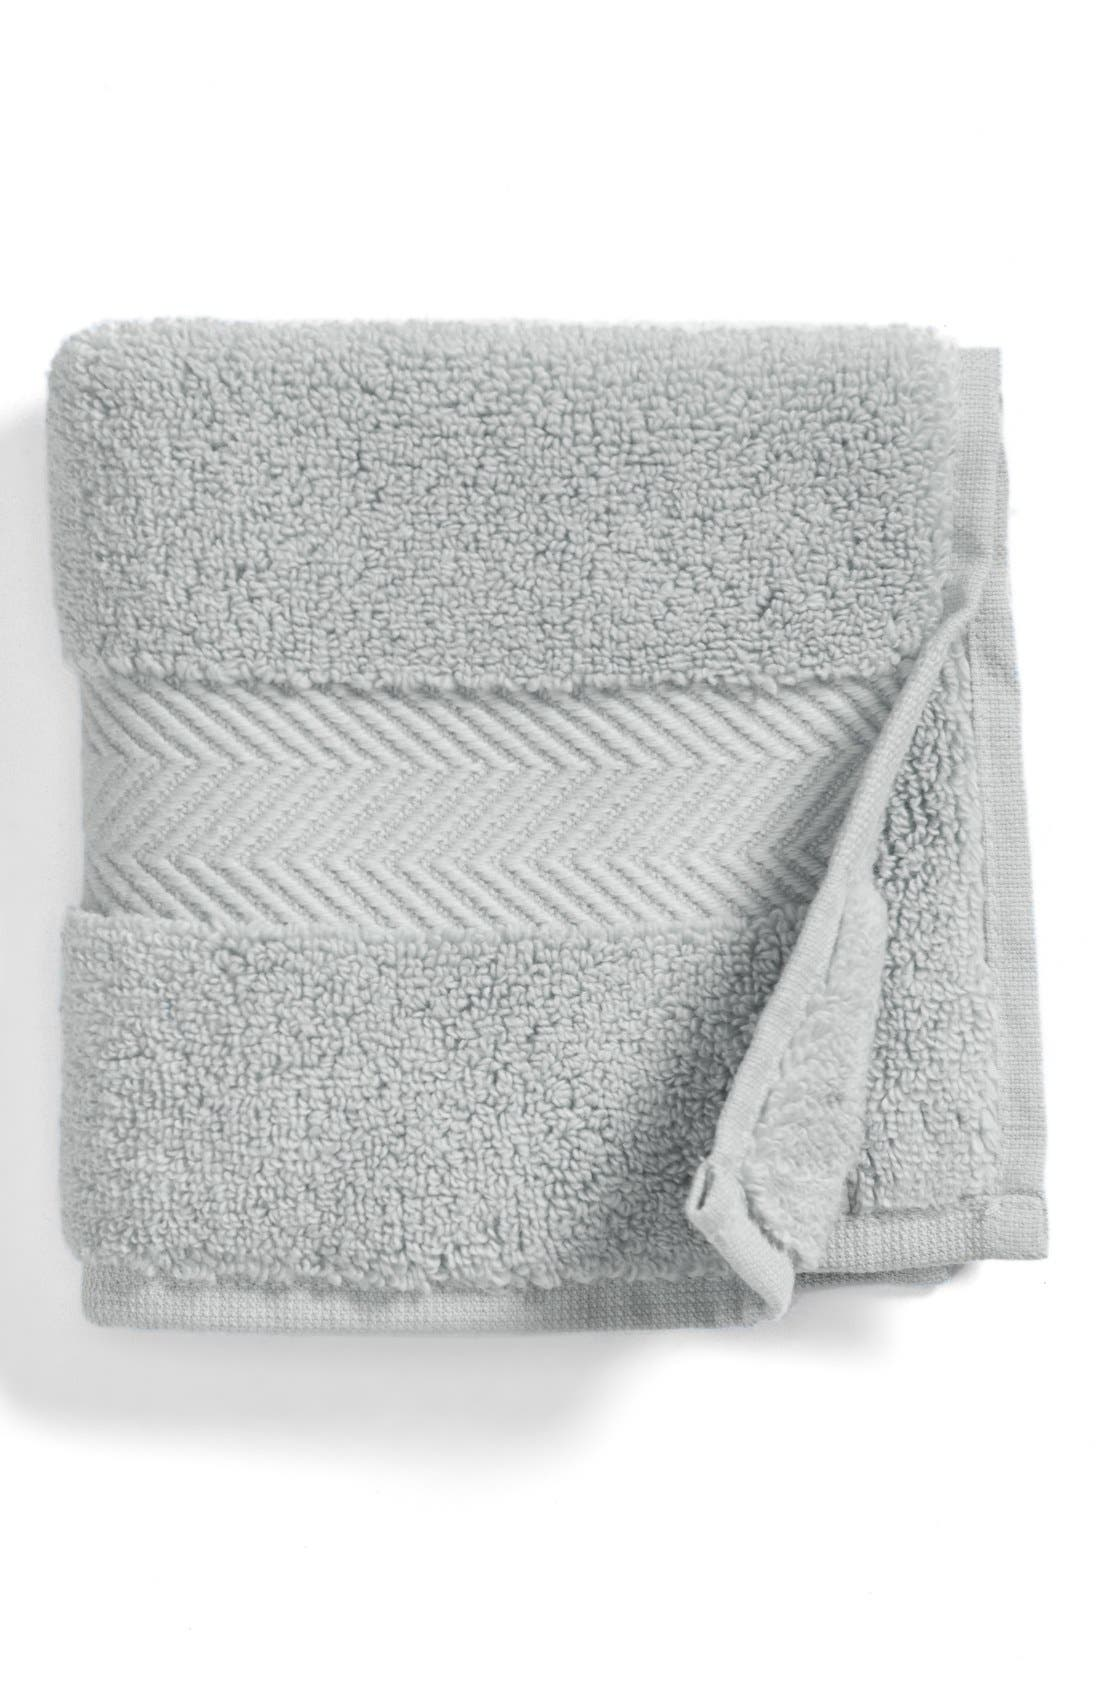 Hydrocotton Washcloth,                             Main thumbnail 1, color,                             GREY VAPOR